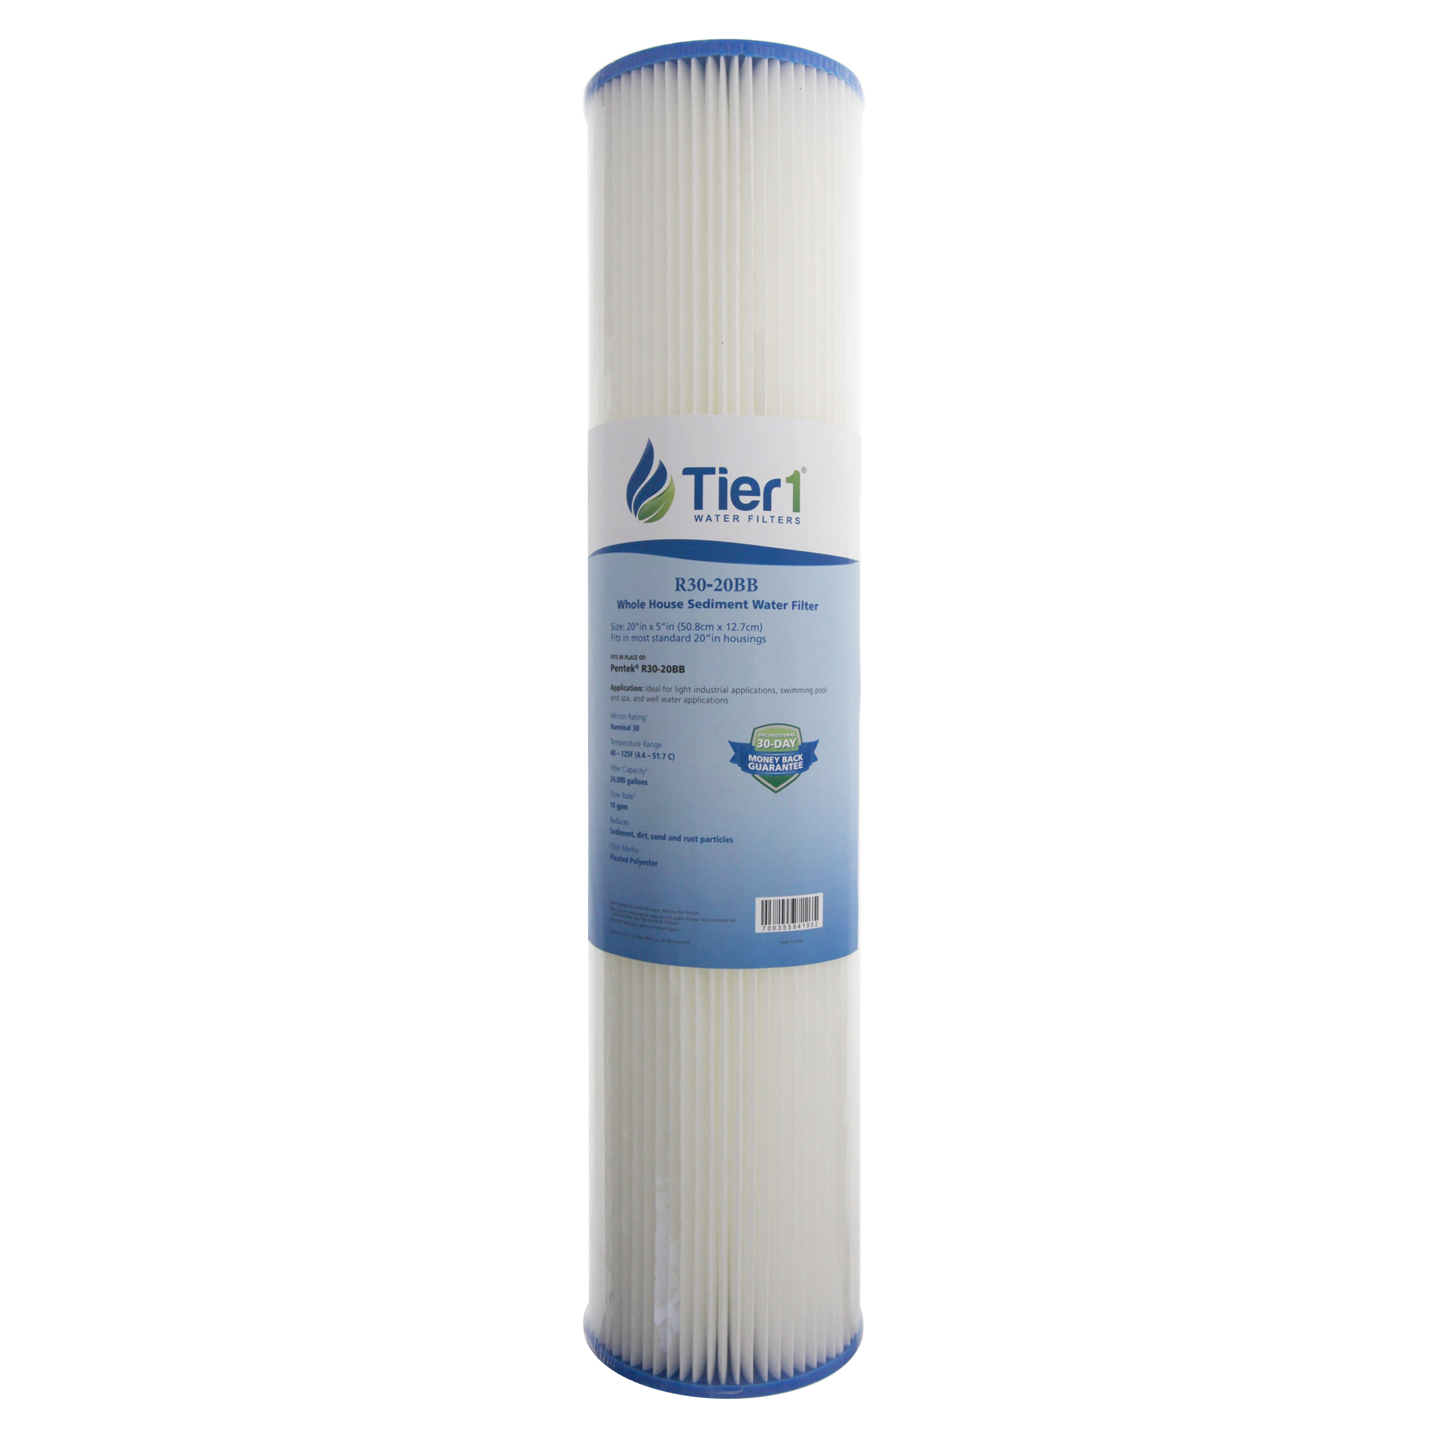 20 X 4.5 Pleated Polyester Replacement Filter by Tier1 (30 micron) TIER1-R30-20BB